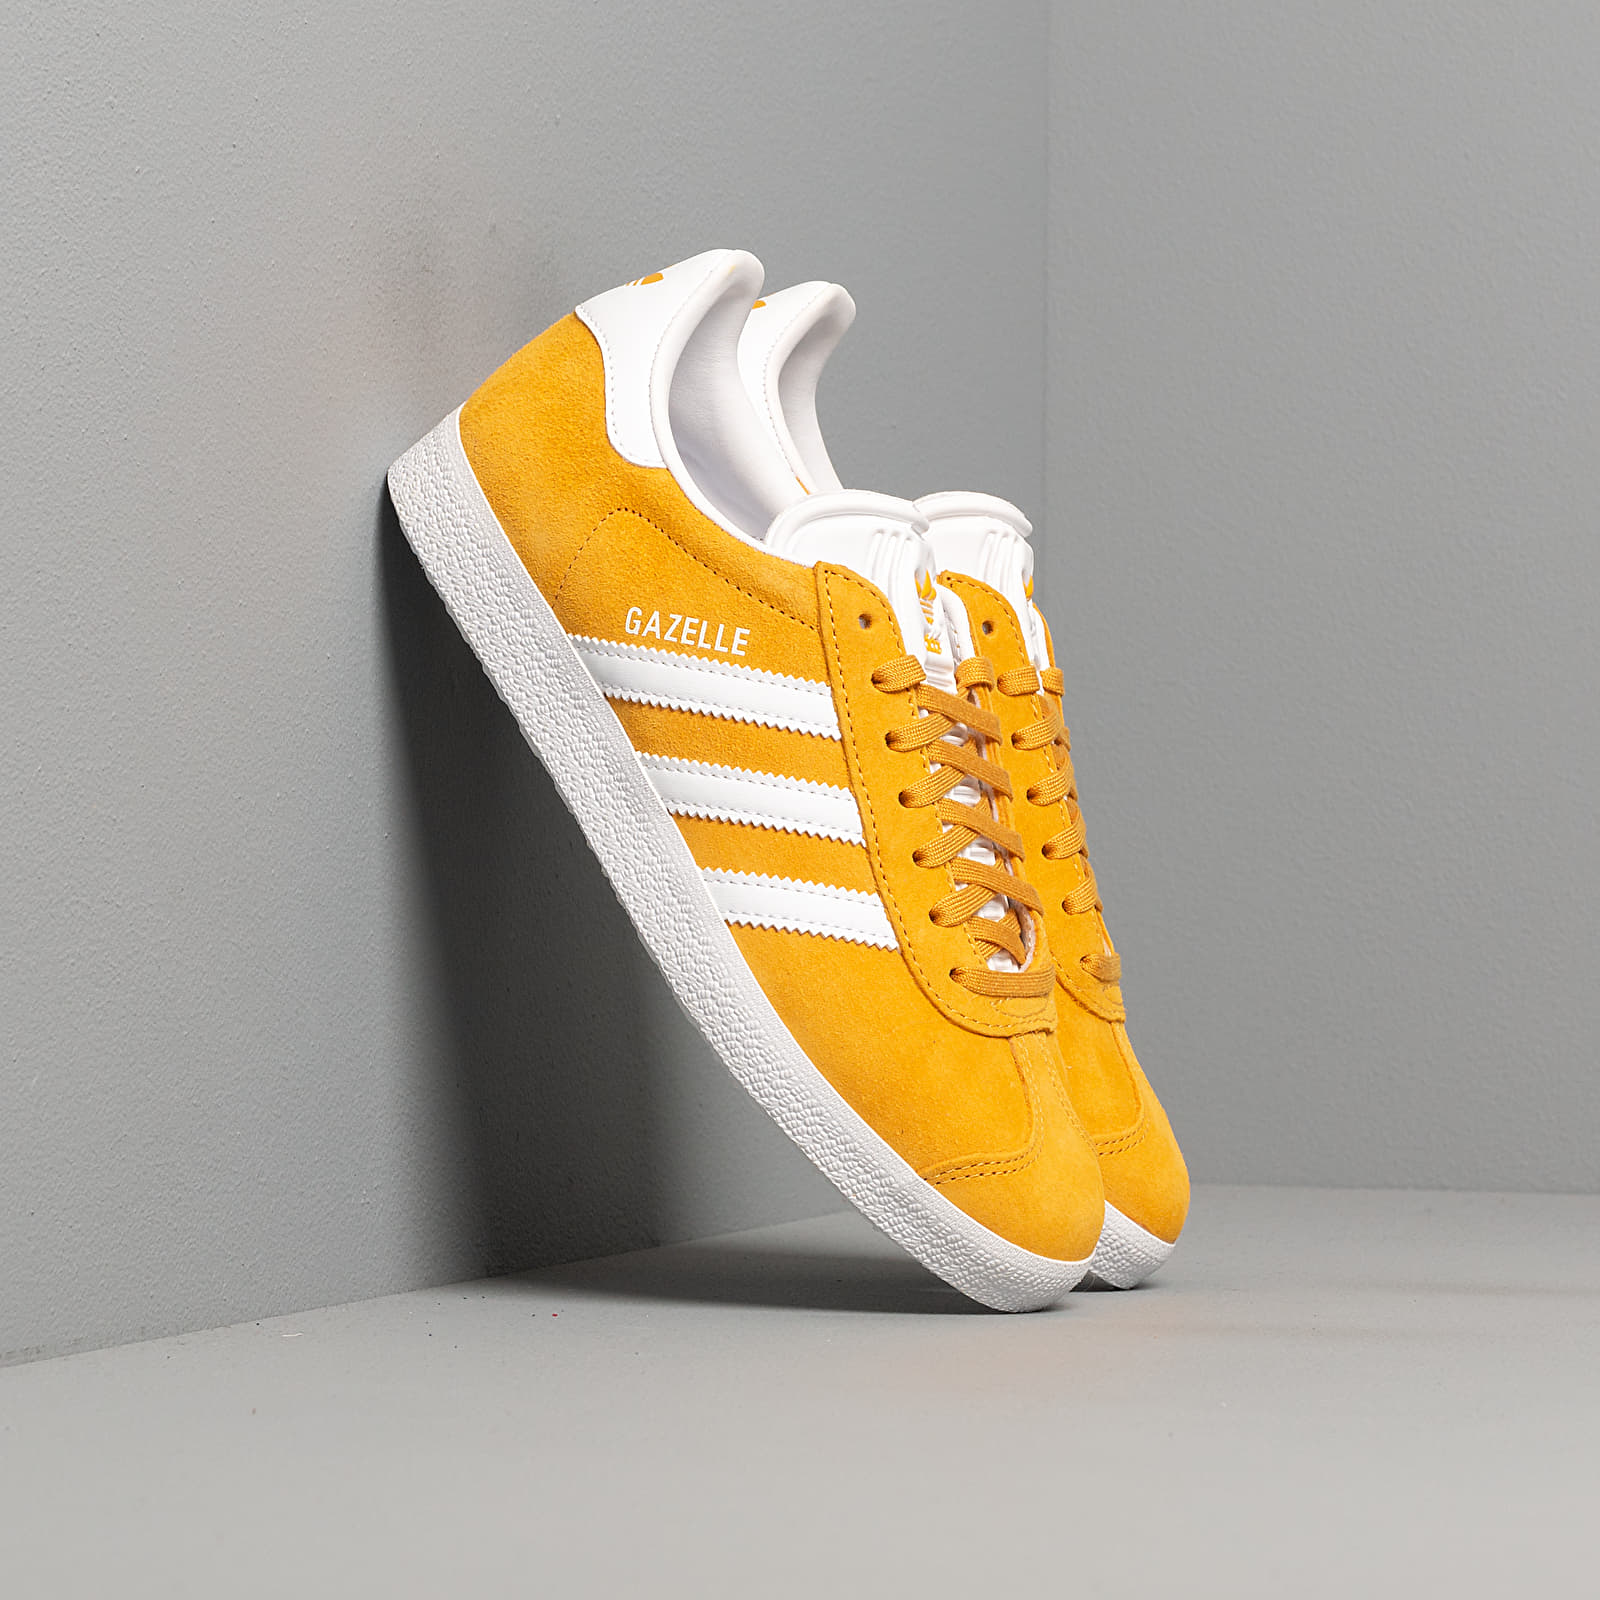 Chaussures et baskets homme adidas Gazelle Active Gold/ Ftw White/ Ftw White